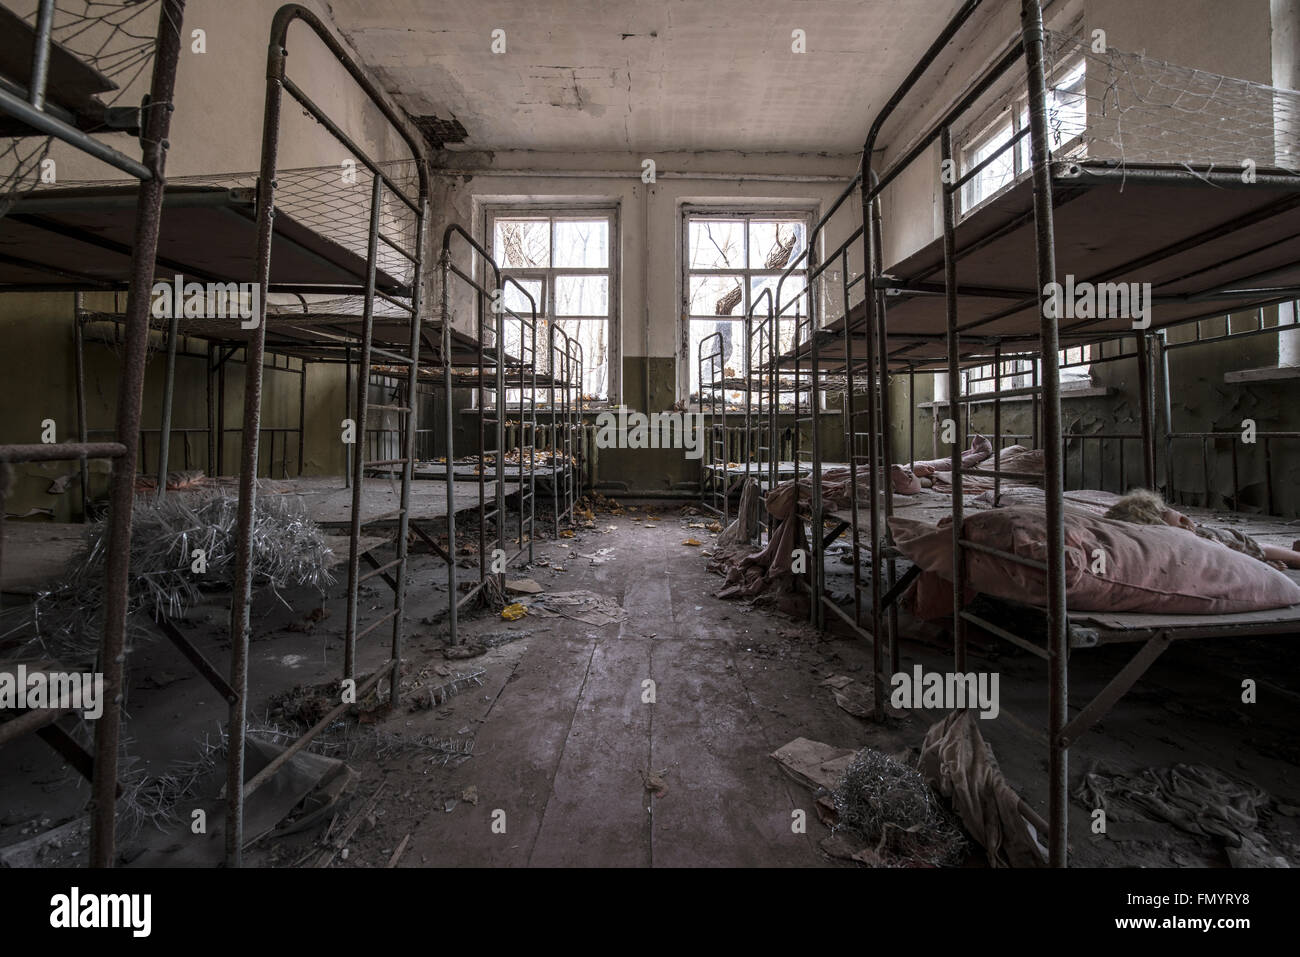 Children's bunk beds in Kindergarten in Pripyat, Chernobyl scene of 1986 nuclear disaster - Stock Image